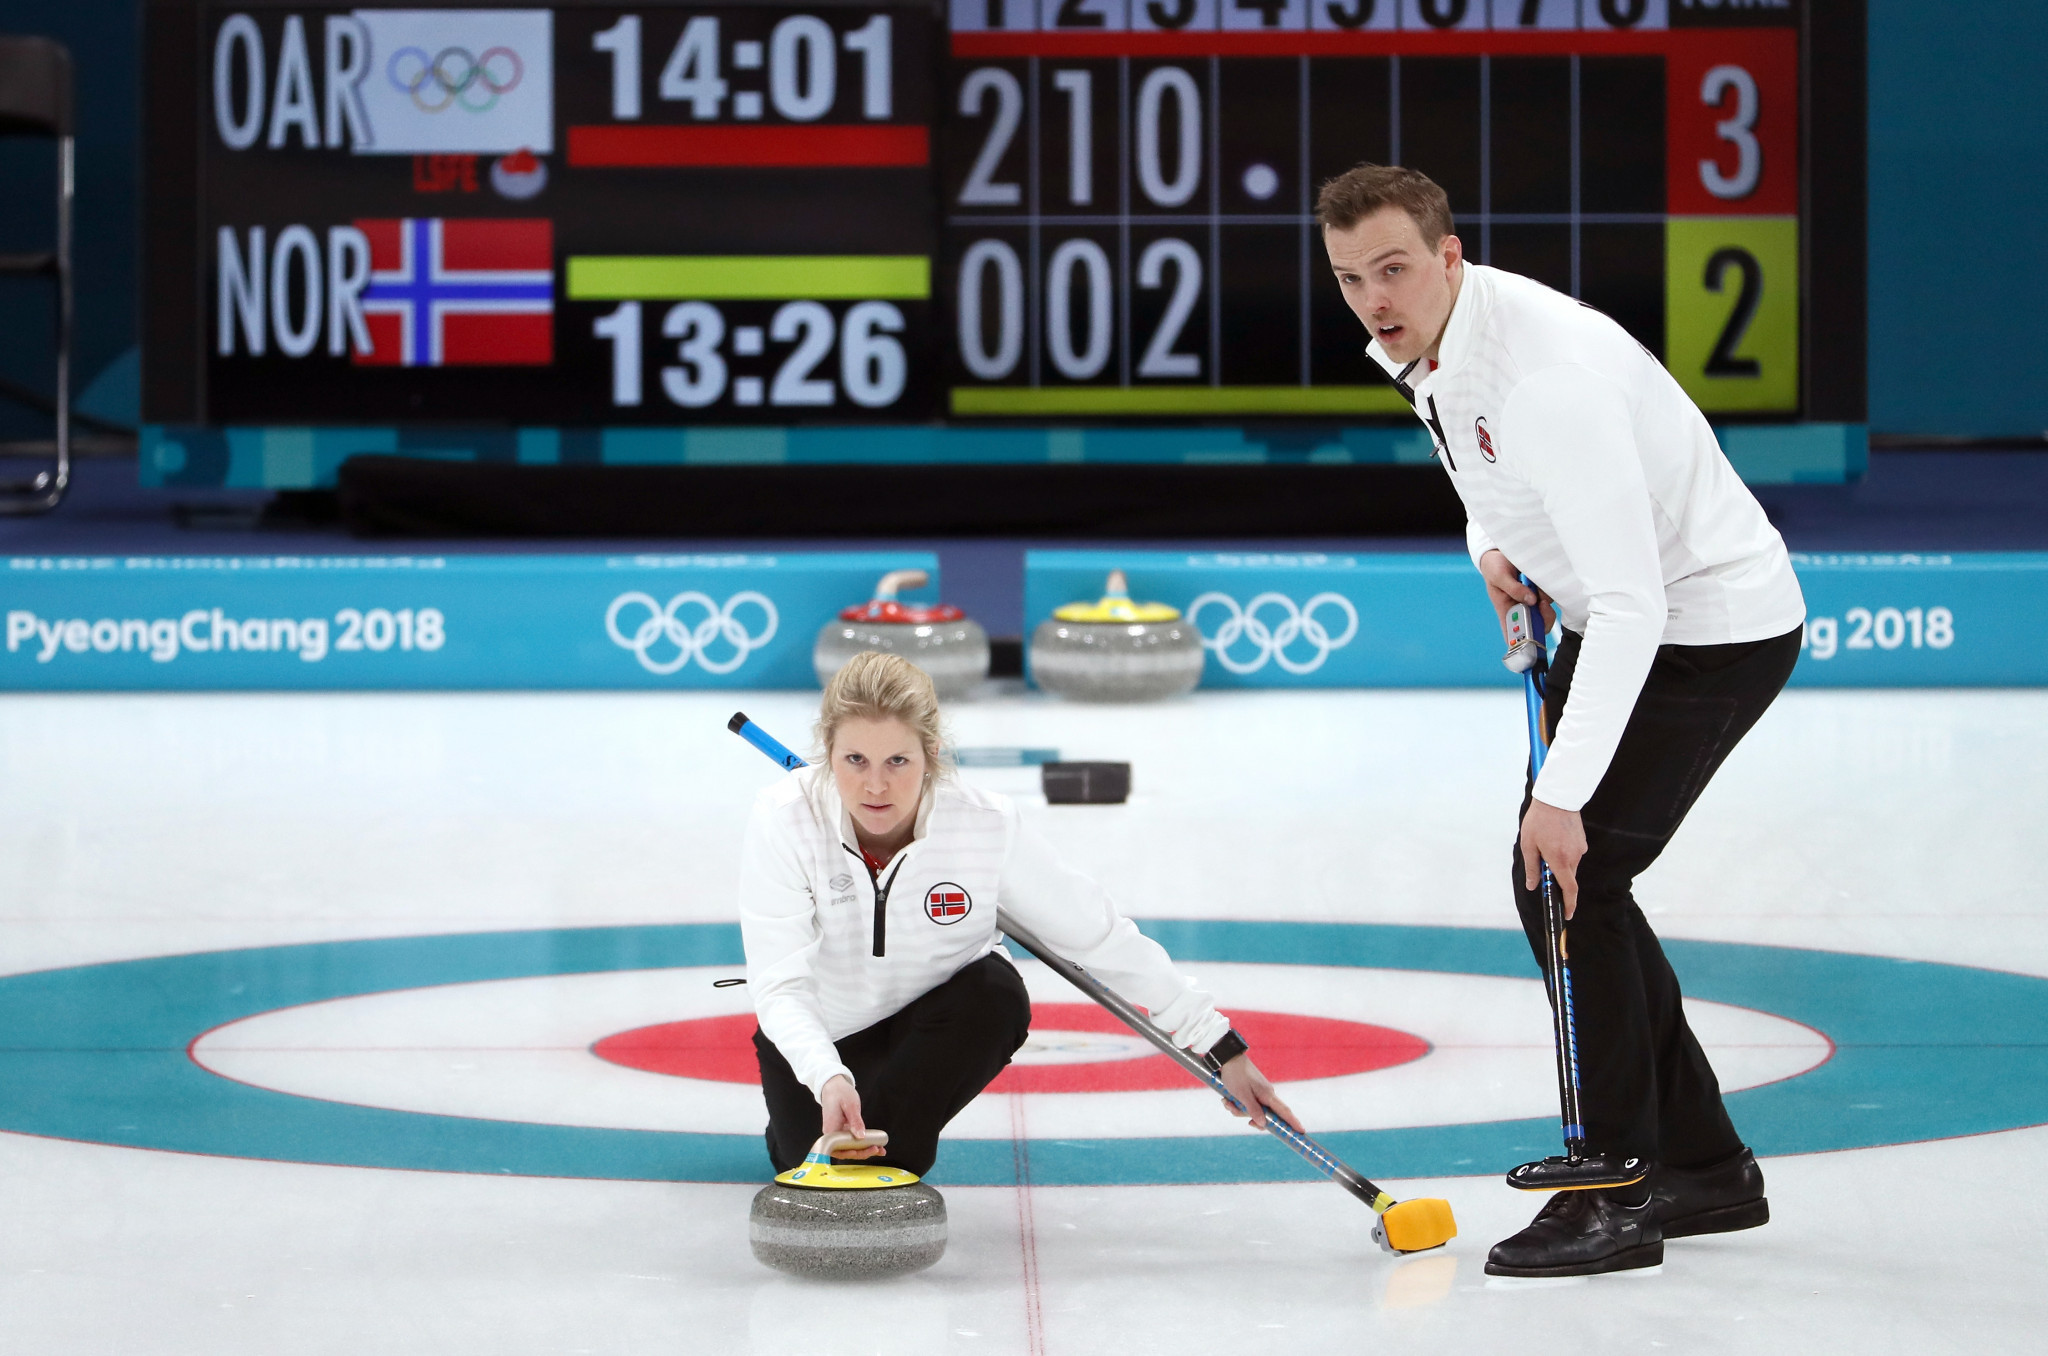 Kristin Skaslien and Magnus Nedregotten of Norway are due to be upgraded to the bronze medal